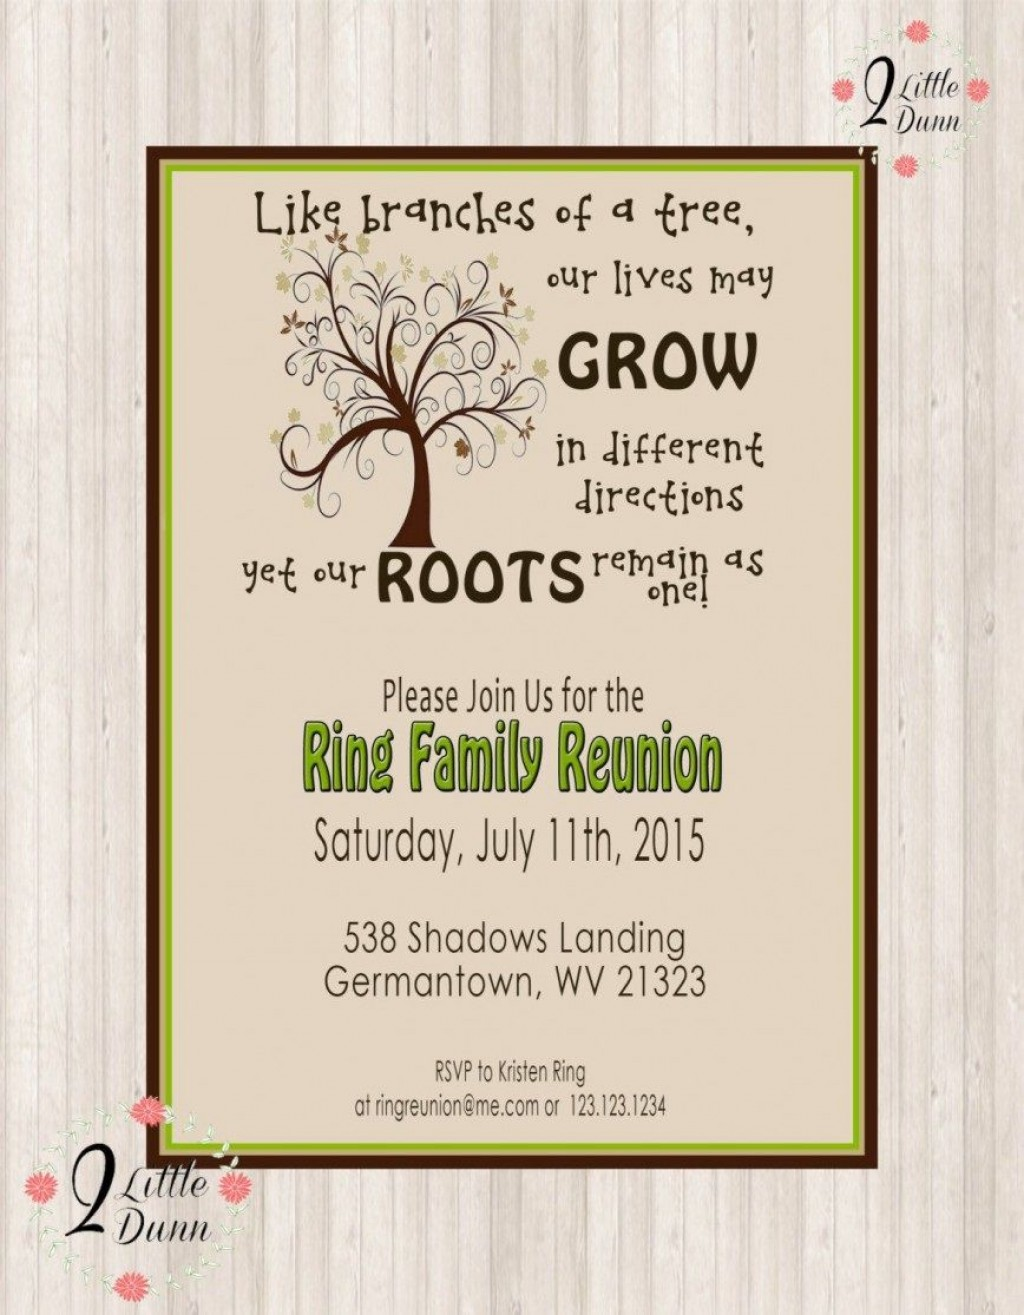 008 Awesome Family Reunion Invitation Card Template Picture Large